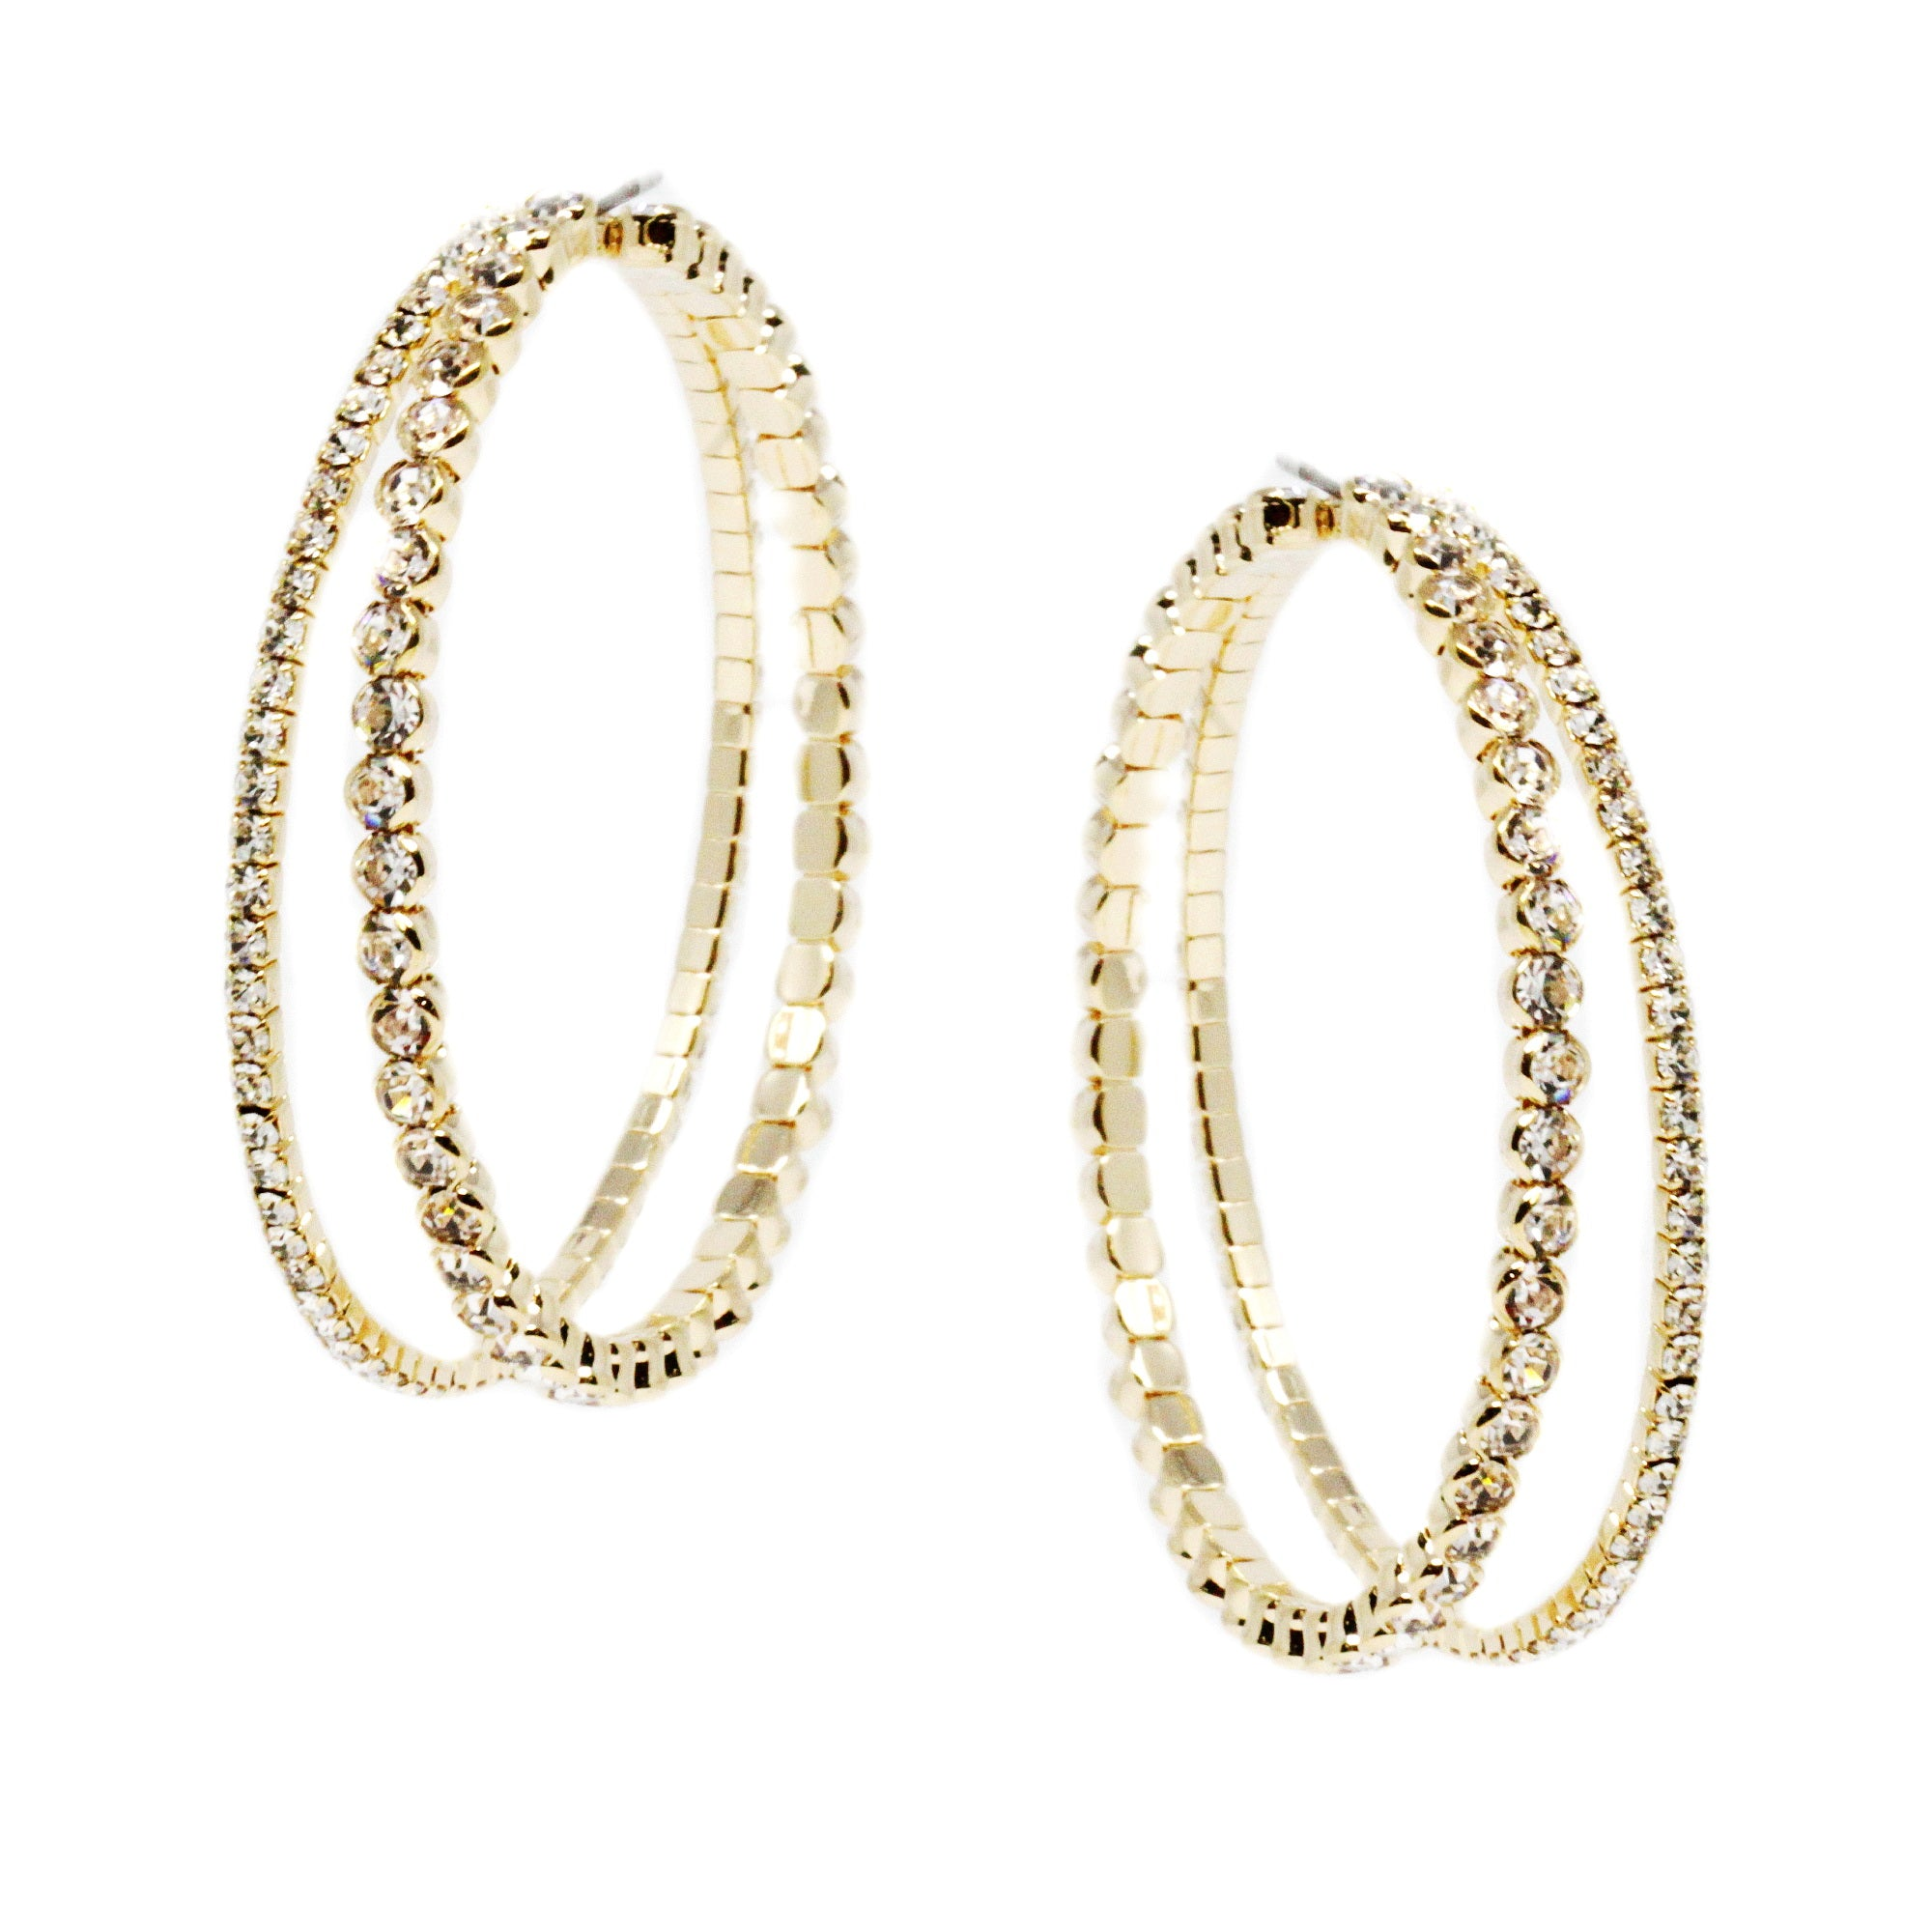 Double Row Rhinestone Hoop Earrings